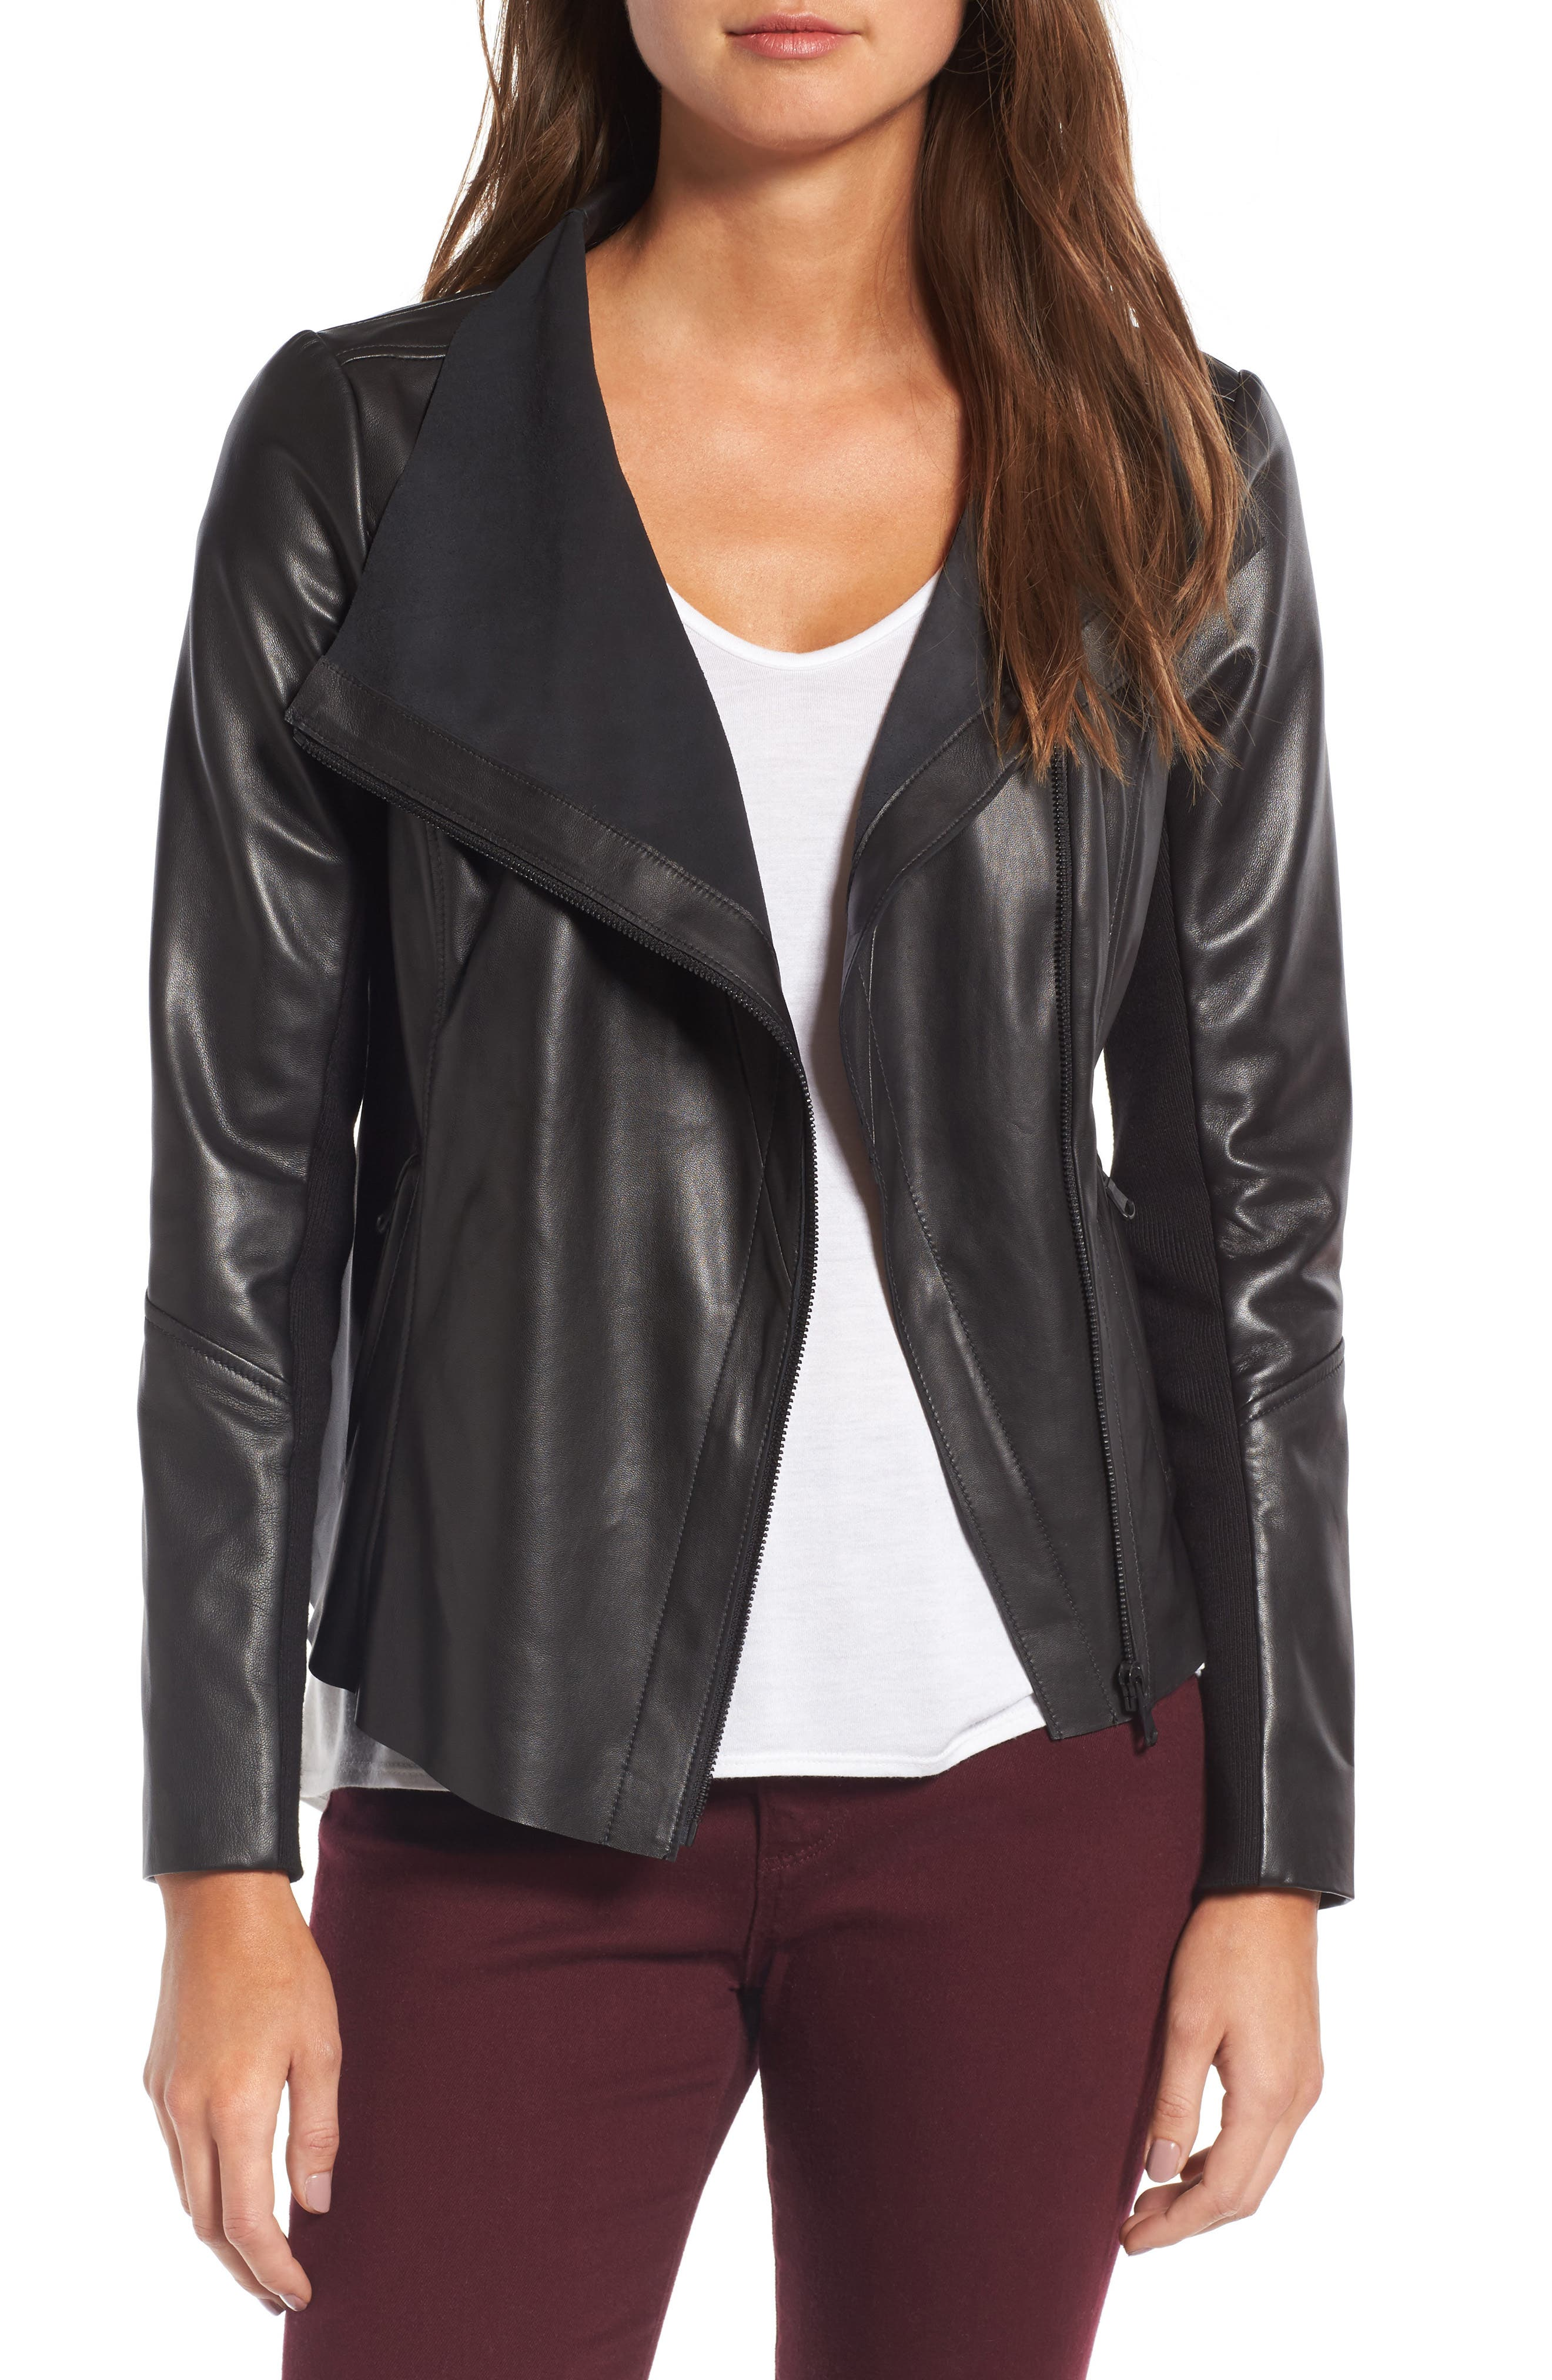 Raw Edge Leather Jacket,                             Main thumbnail 1, color,                             001